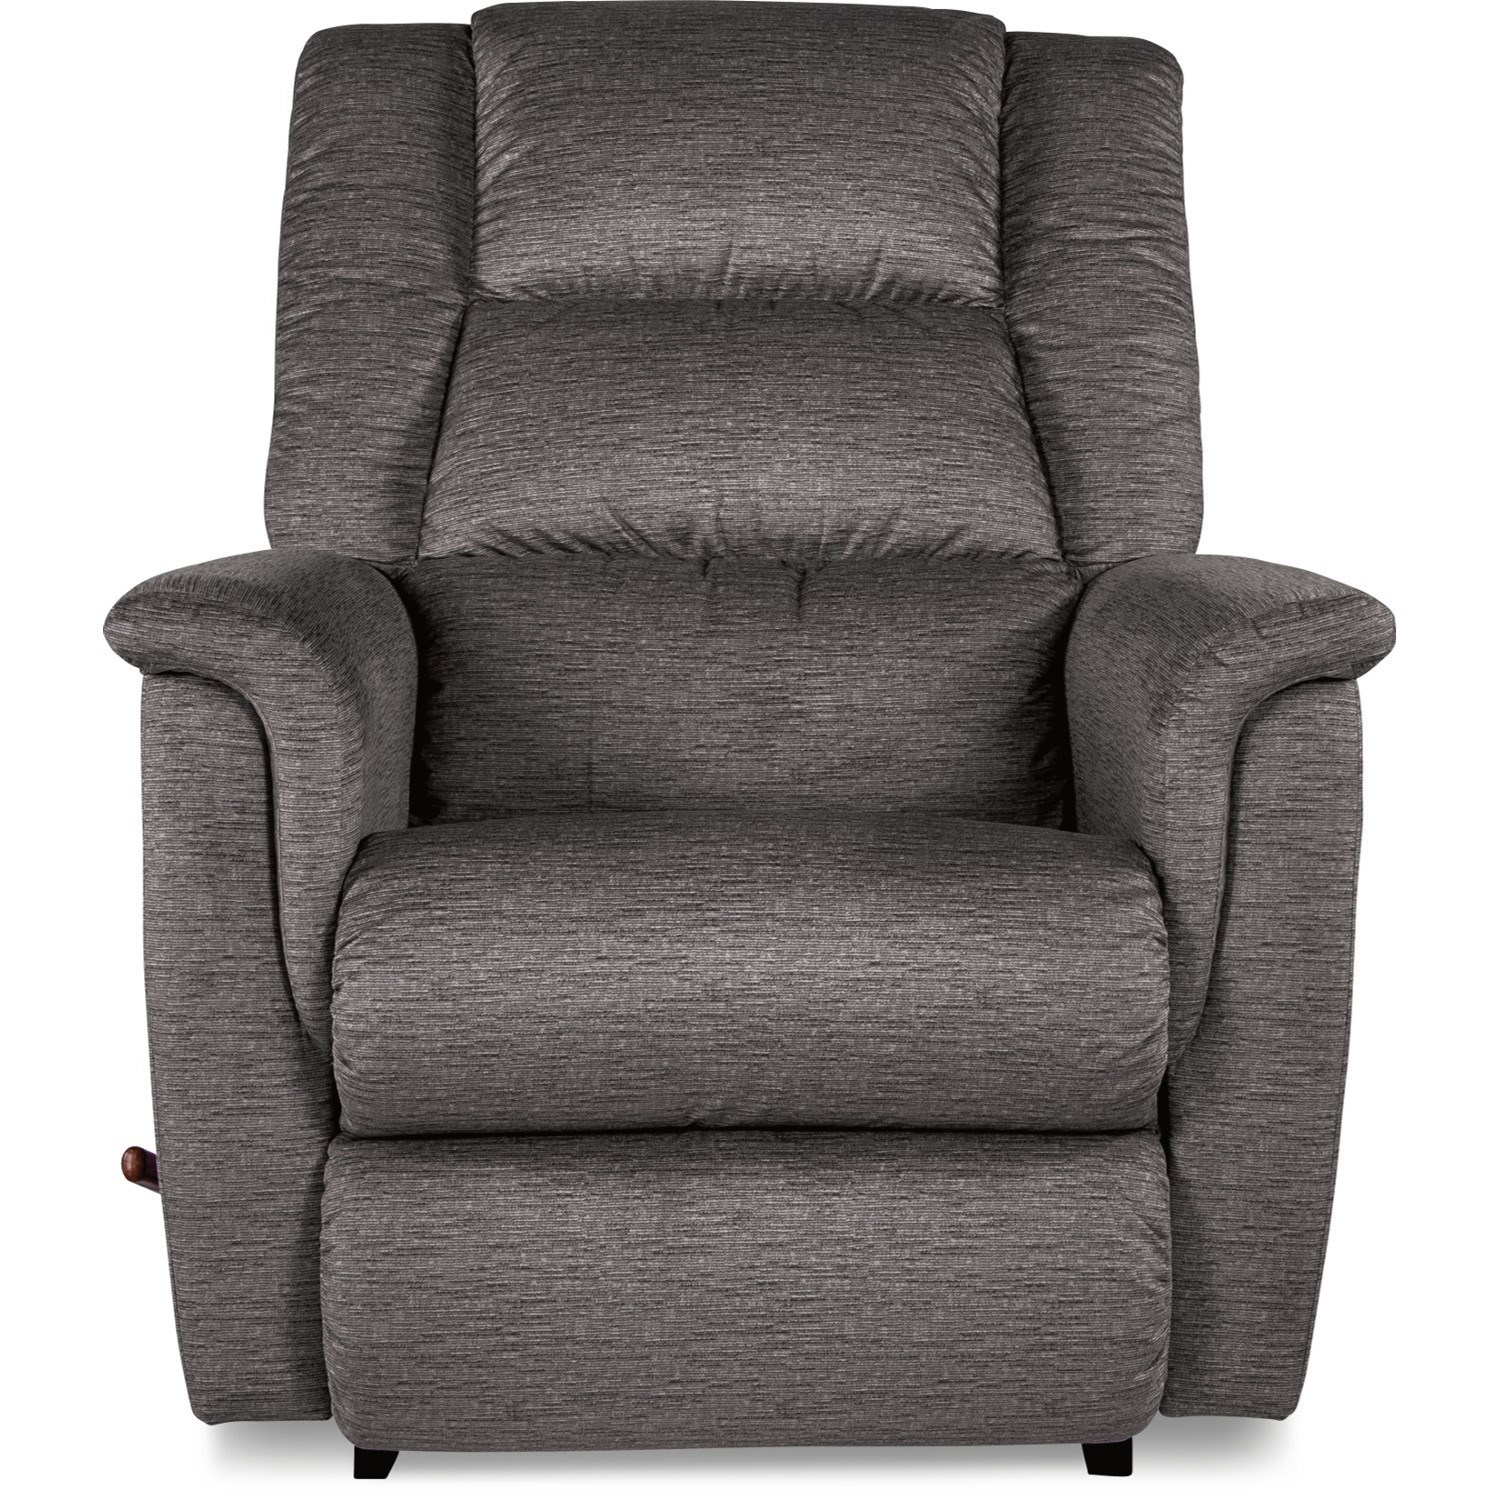 Casual Rocker Recliner w/ usb Charging Port